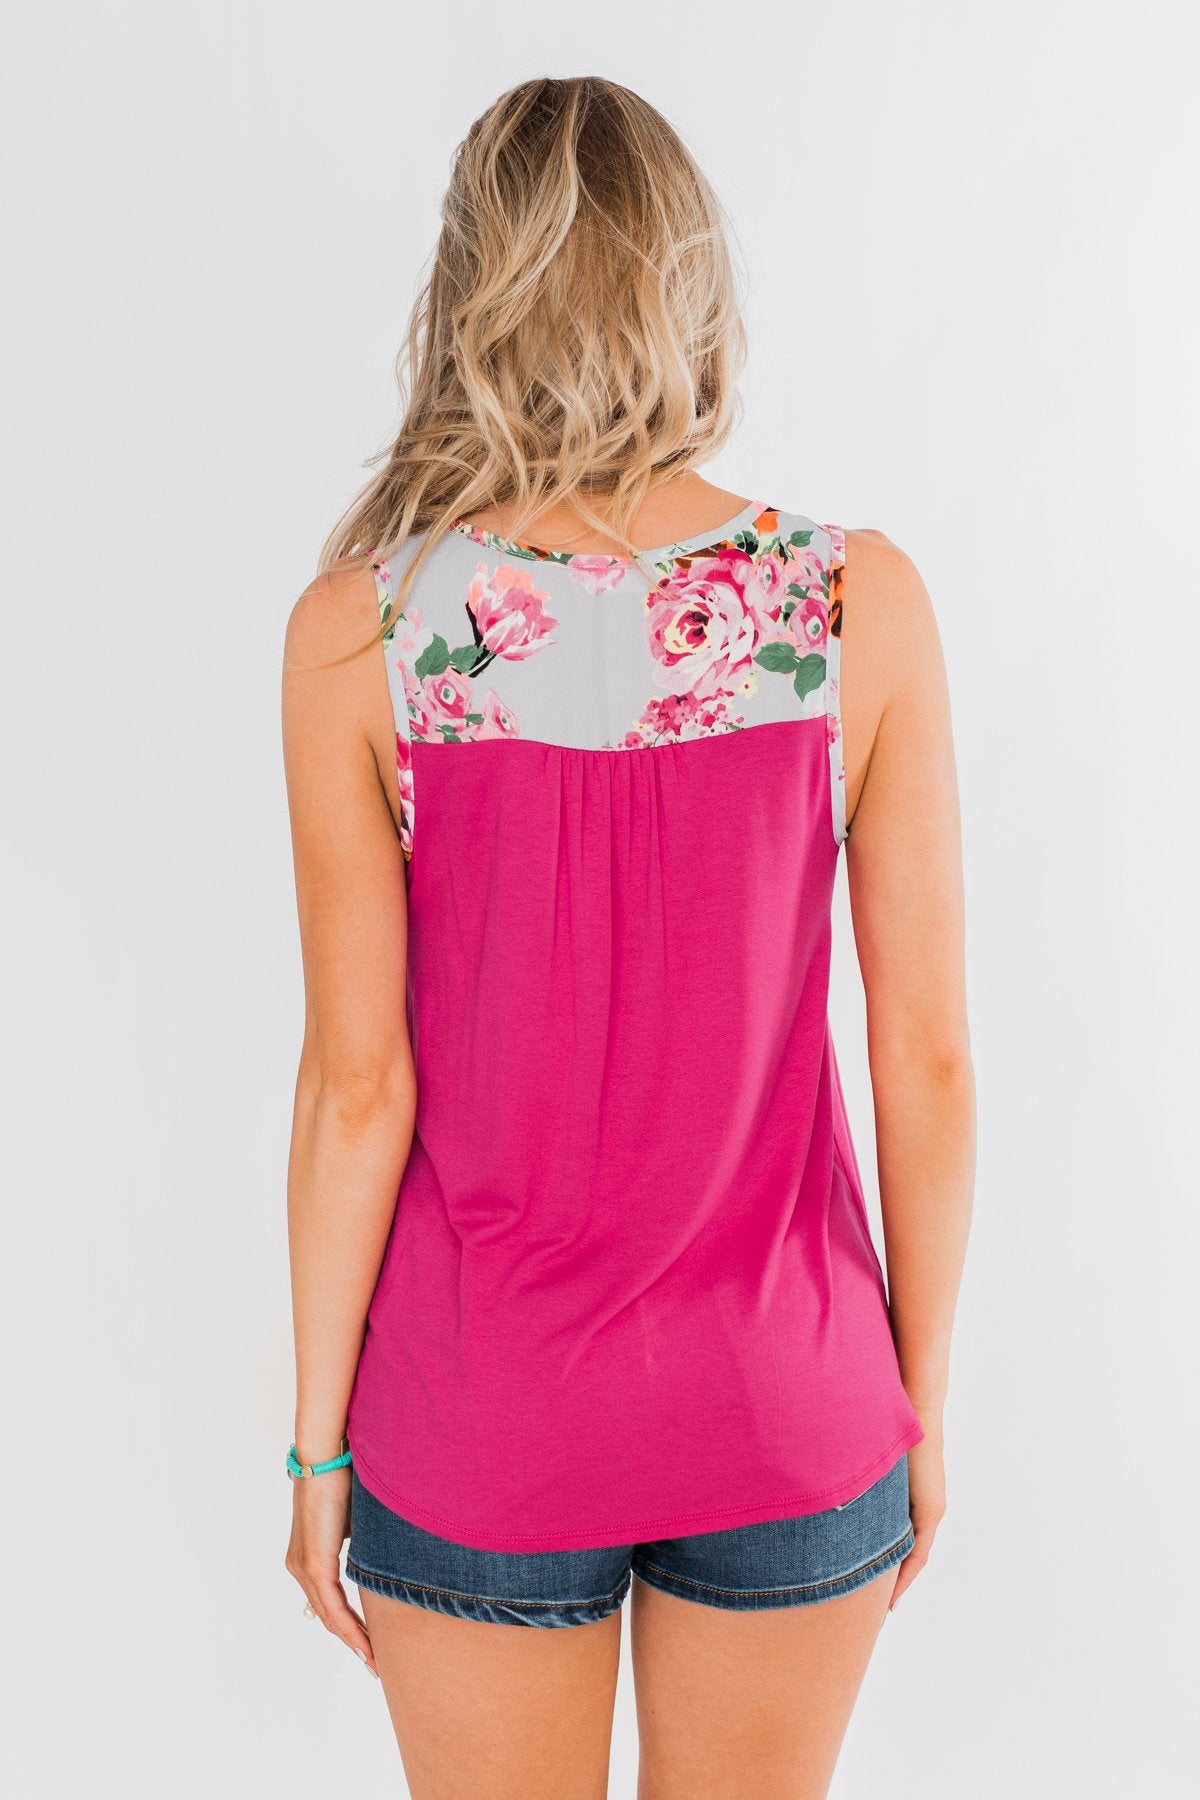 Listen To Your Heart Floral Tank Top- Fuchsia